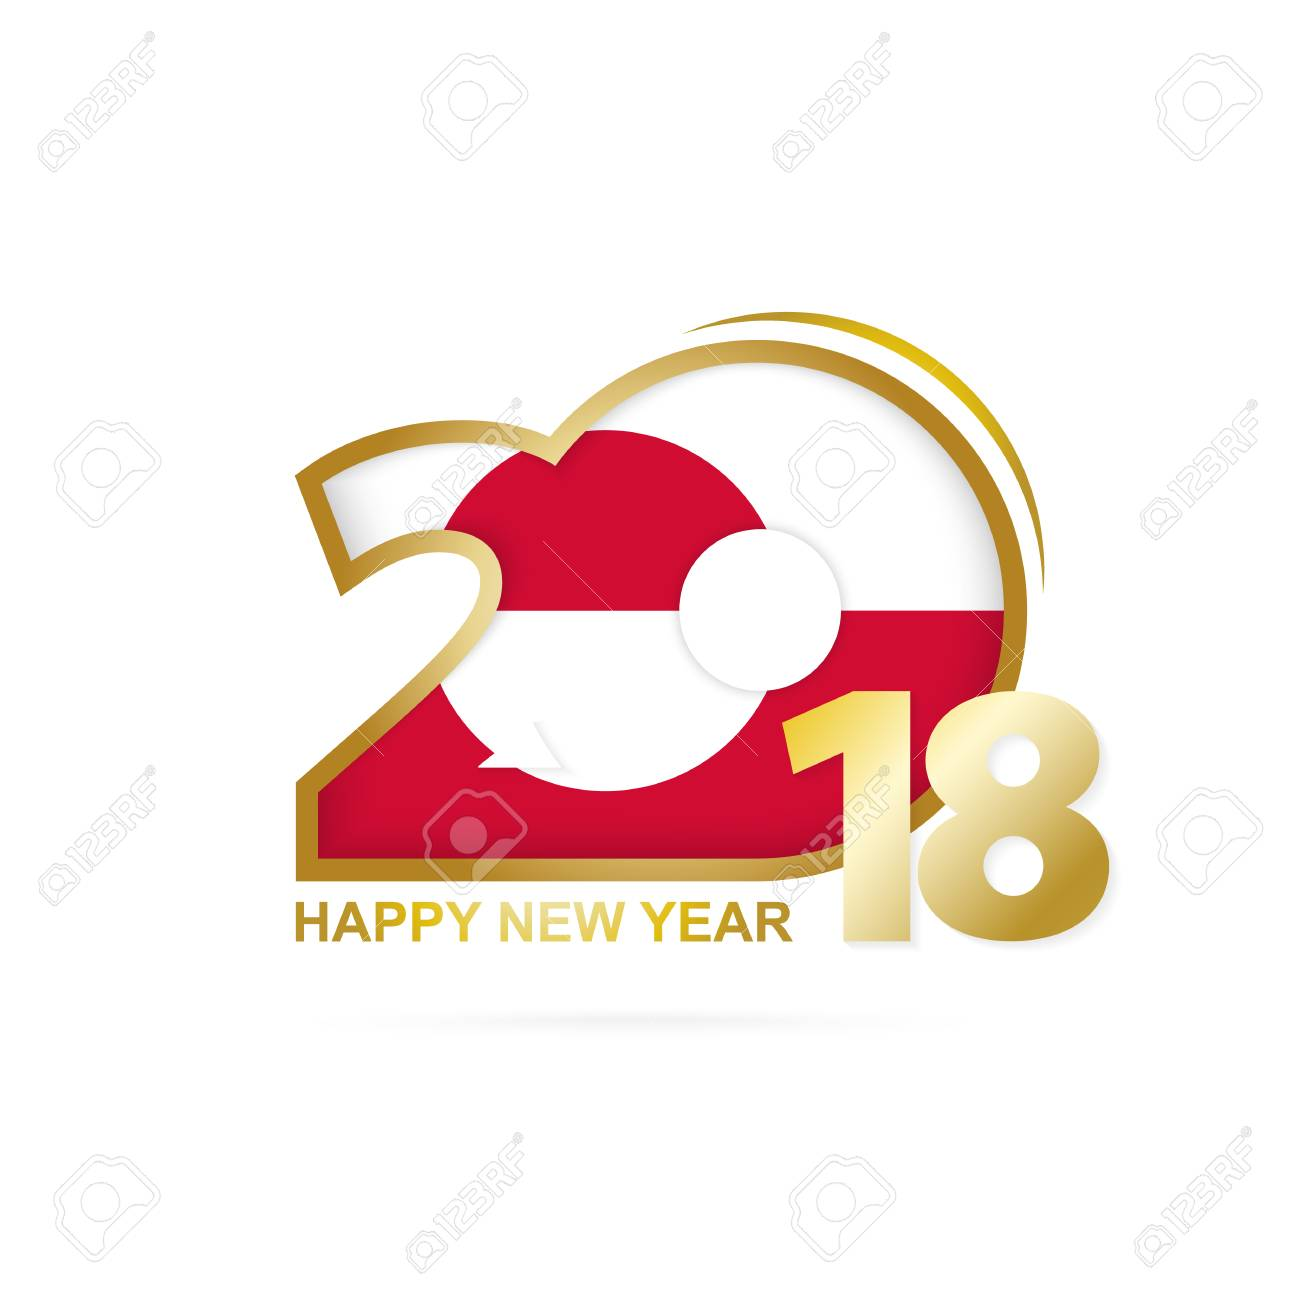 vector year 2018 with greenland flag pattern happy new year design vector illustration